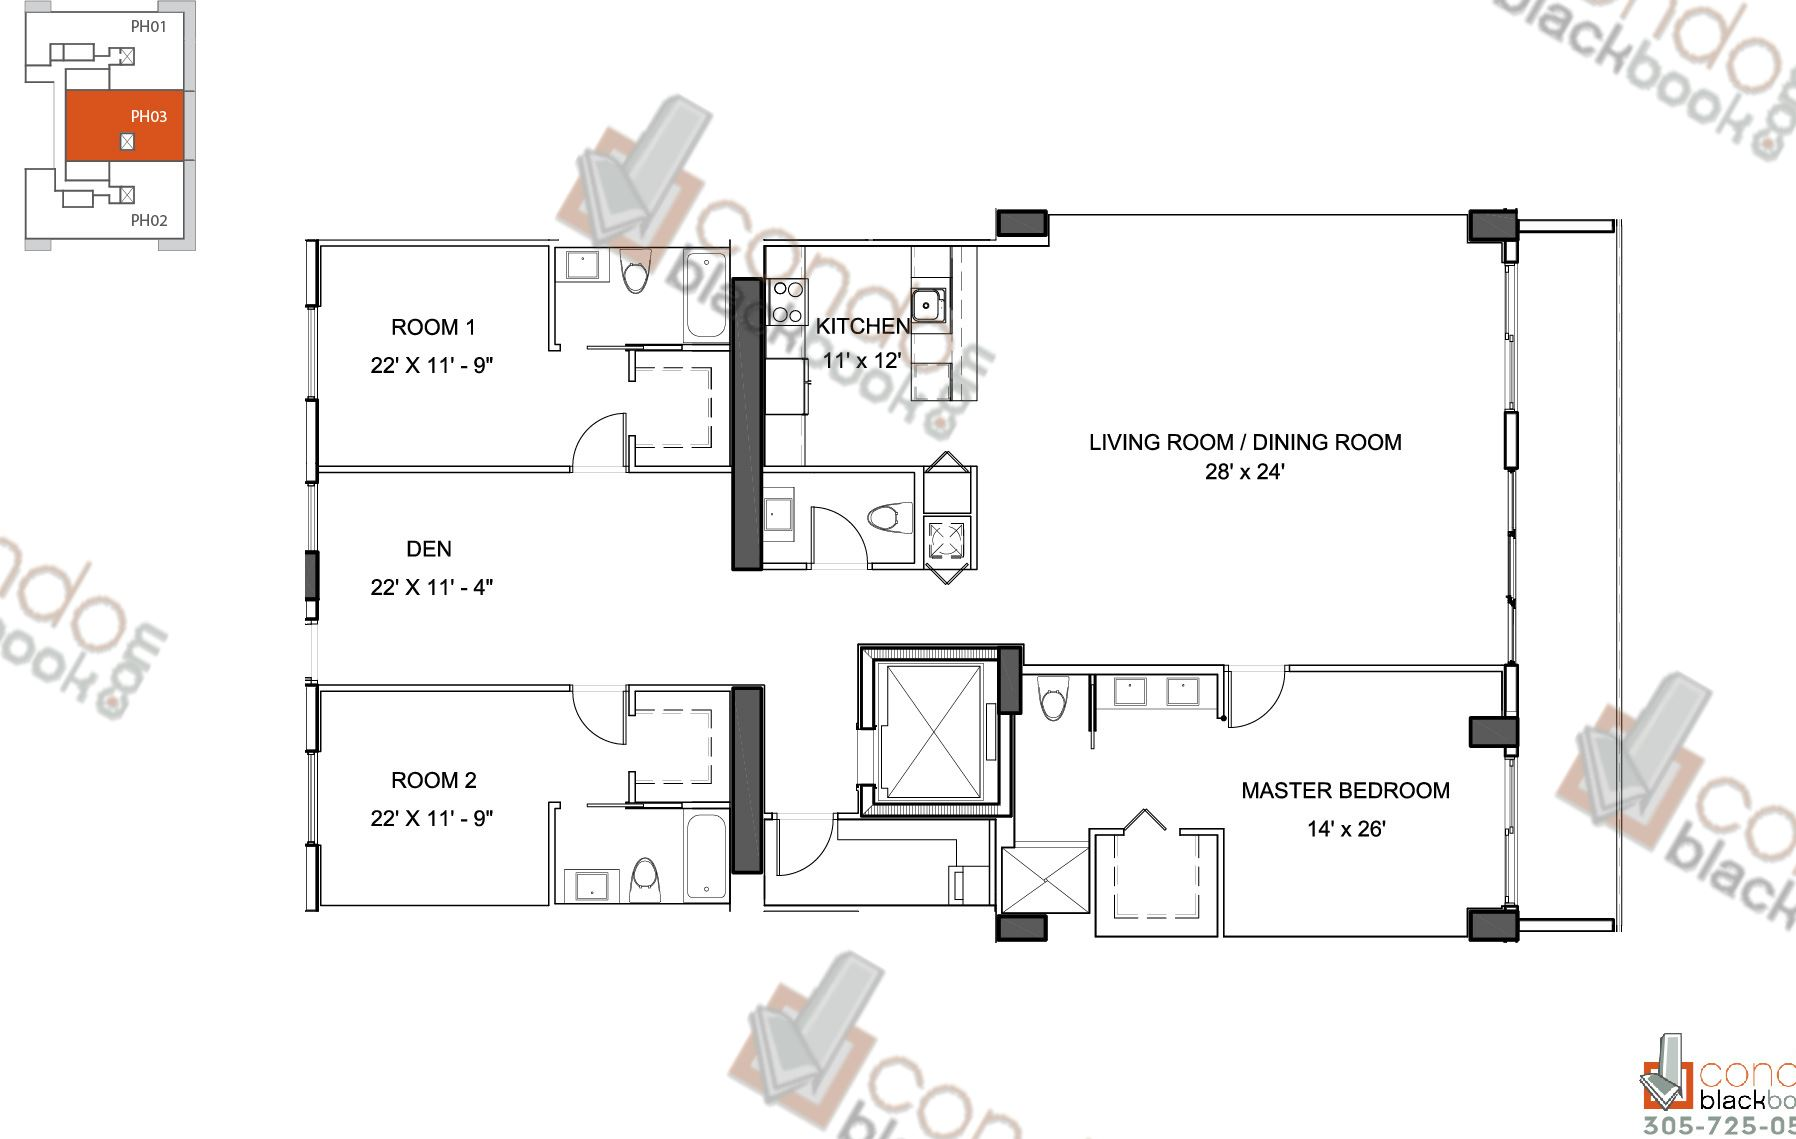 Bay house unit lph03 condo for sale in edgewater miami for Edgewater house plan